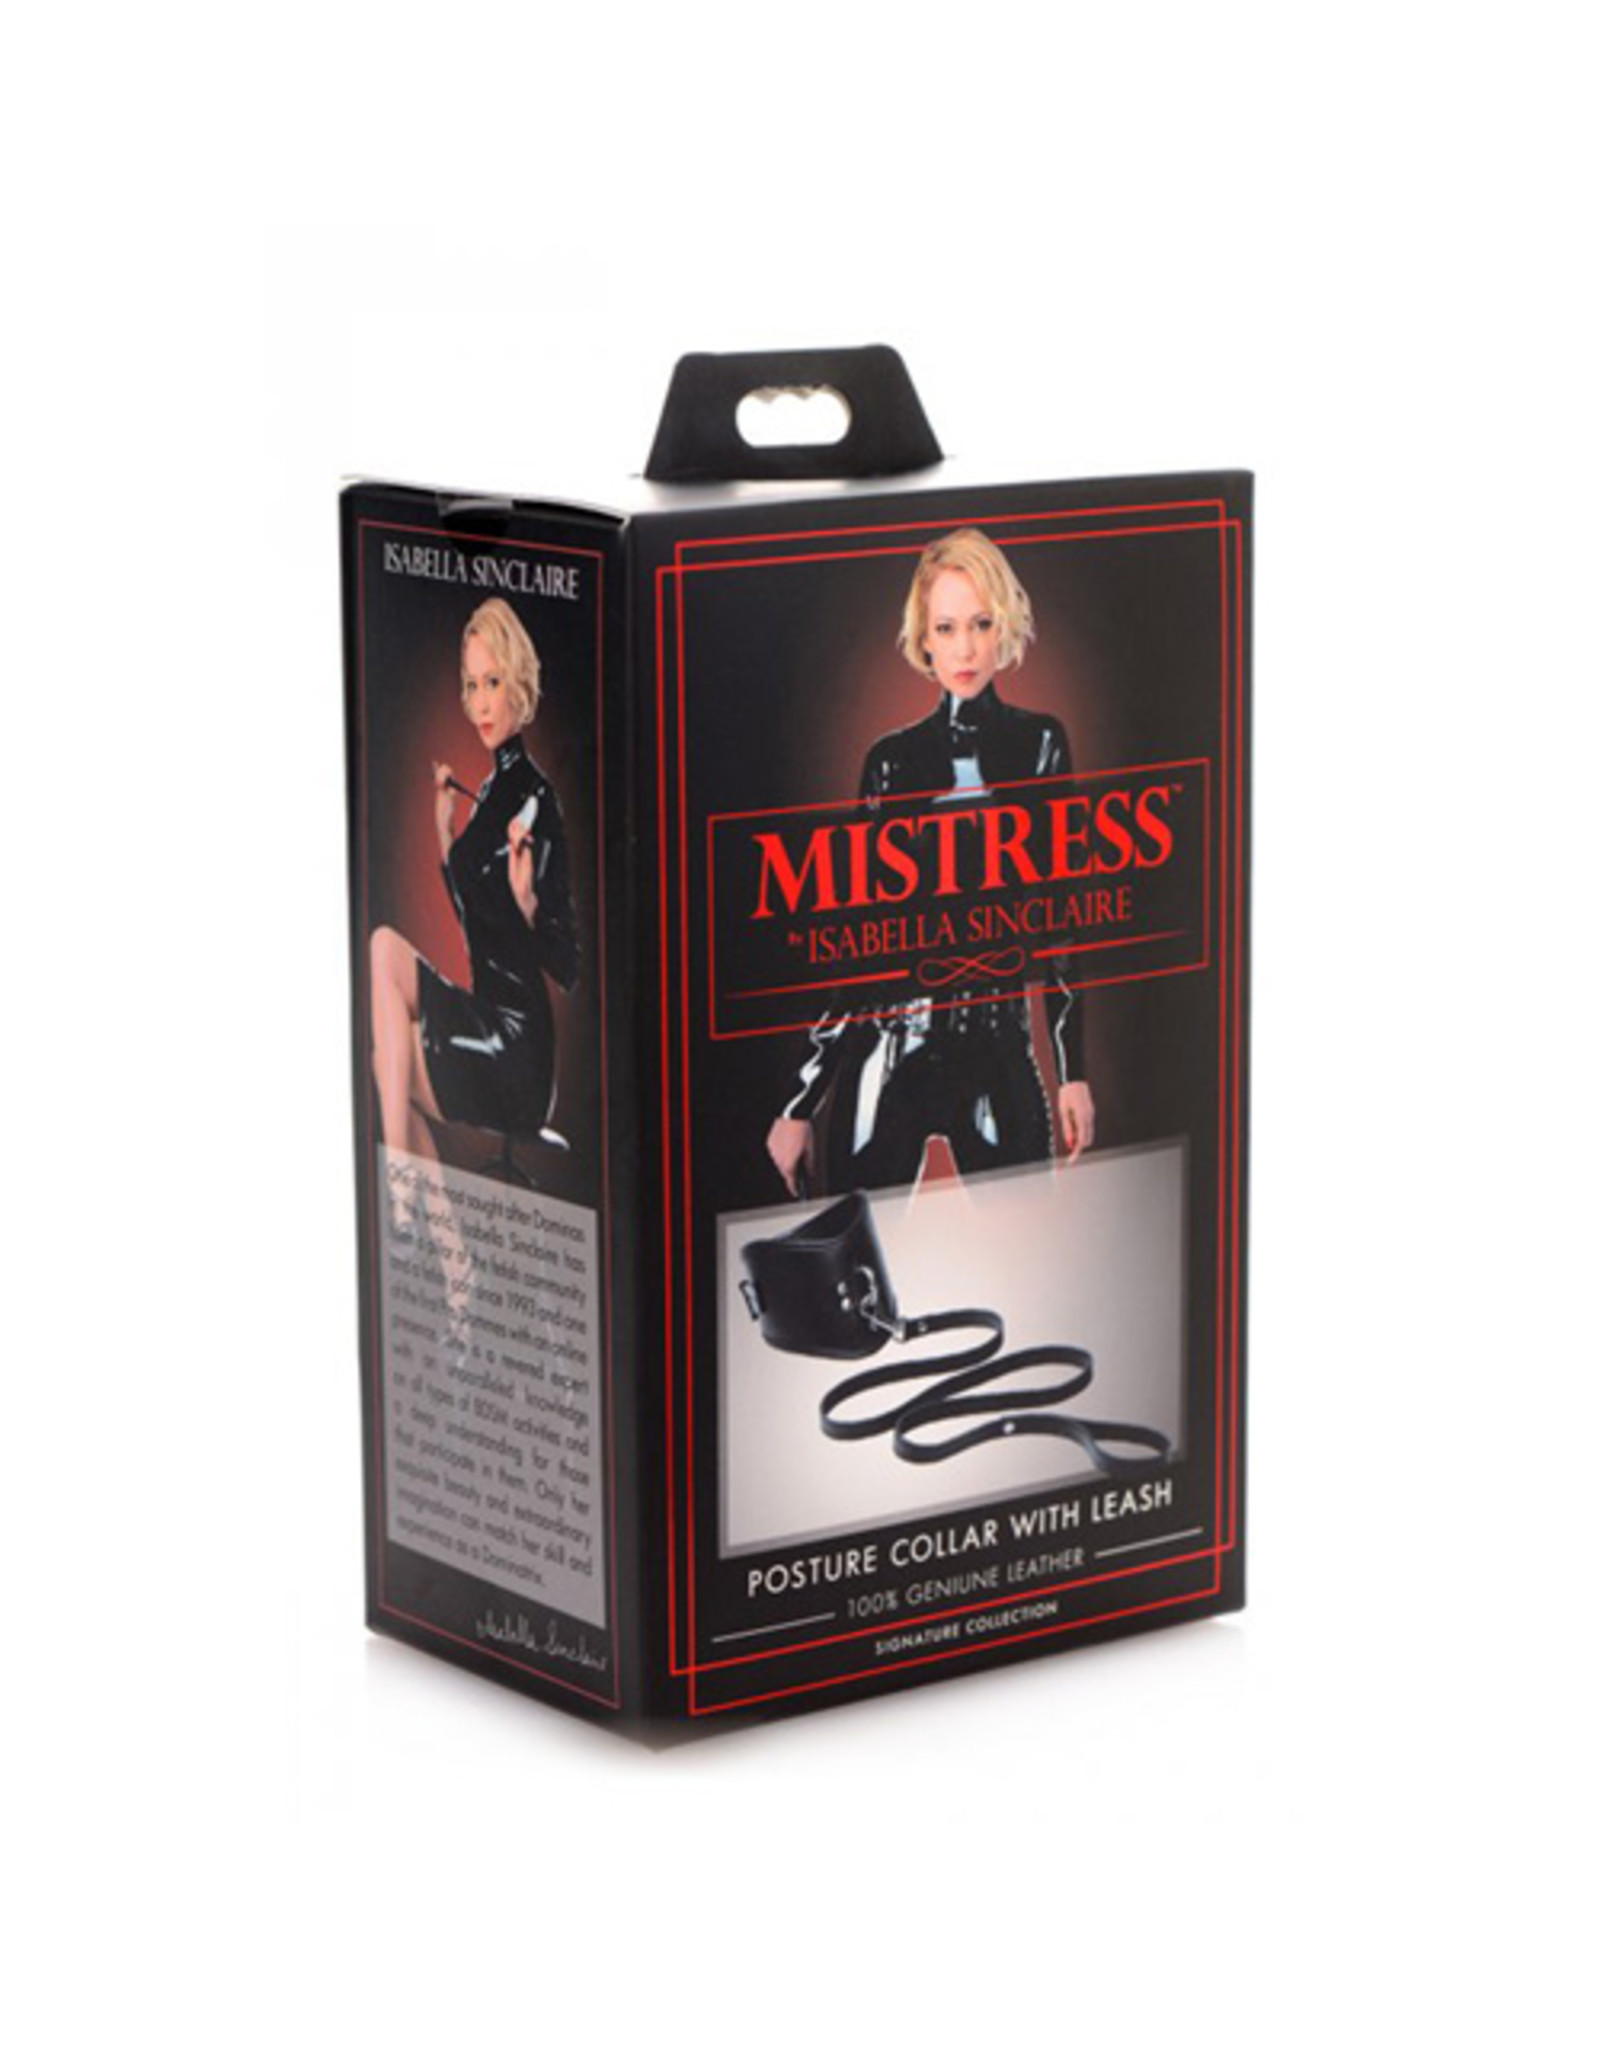 Mistress by Isabella Sinclaire Isabella Sinclaire Halsband Met Riem